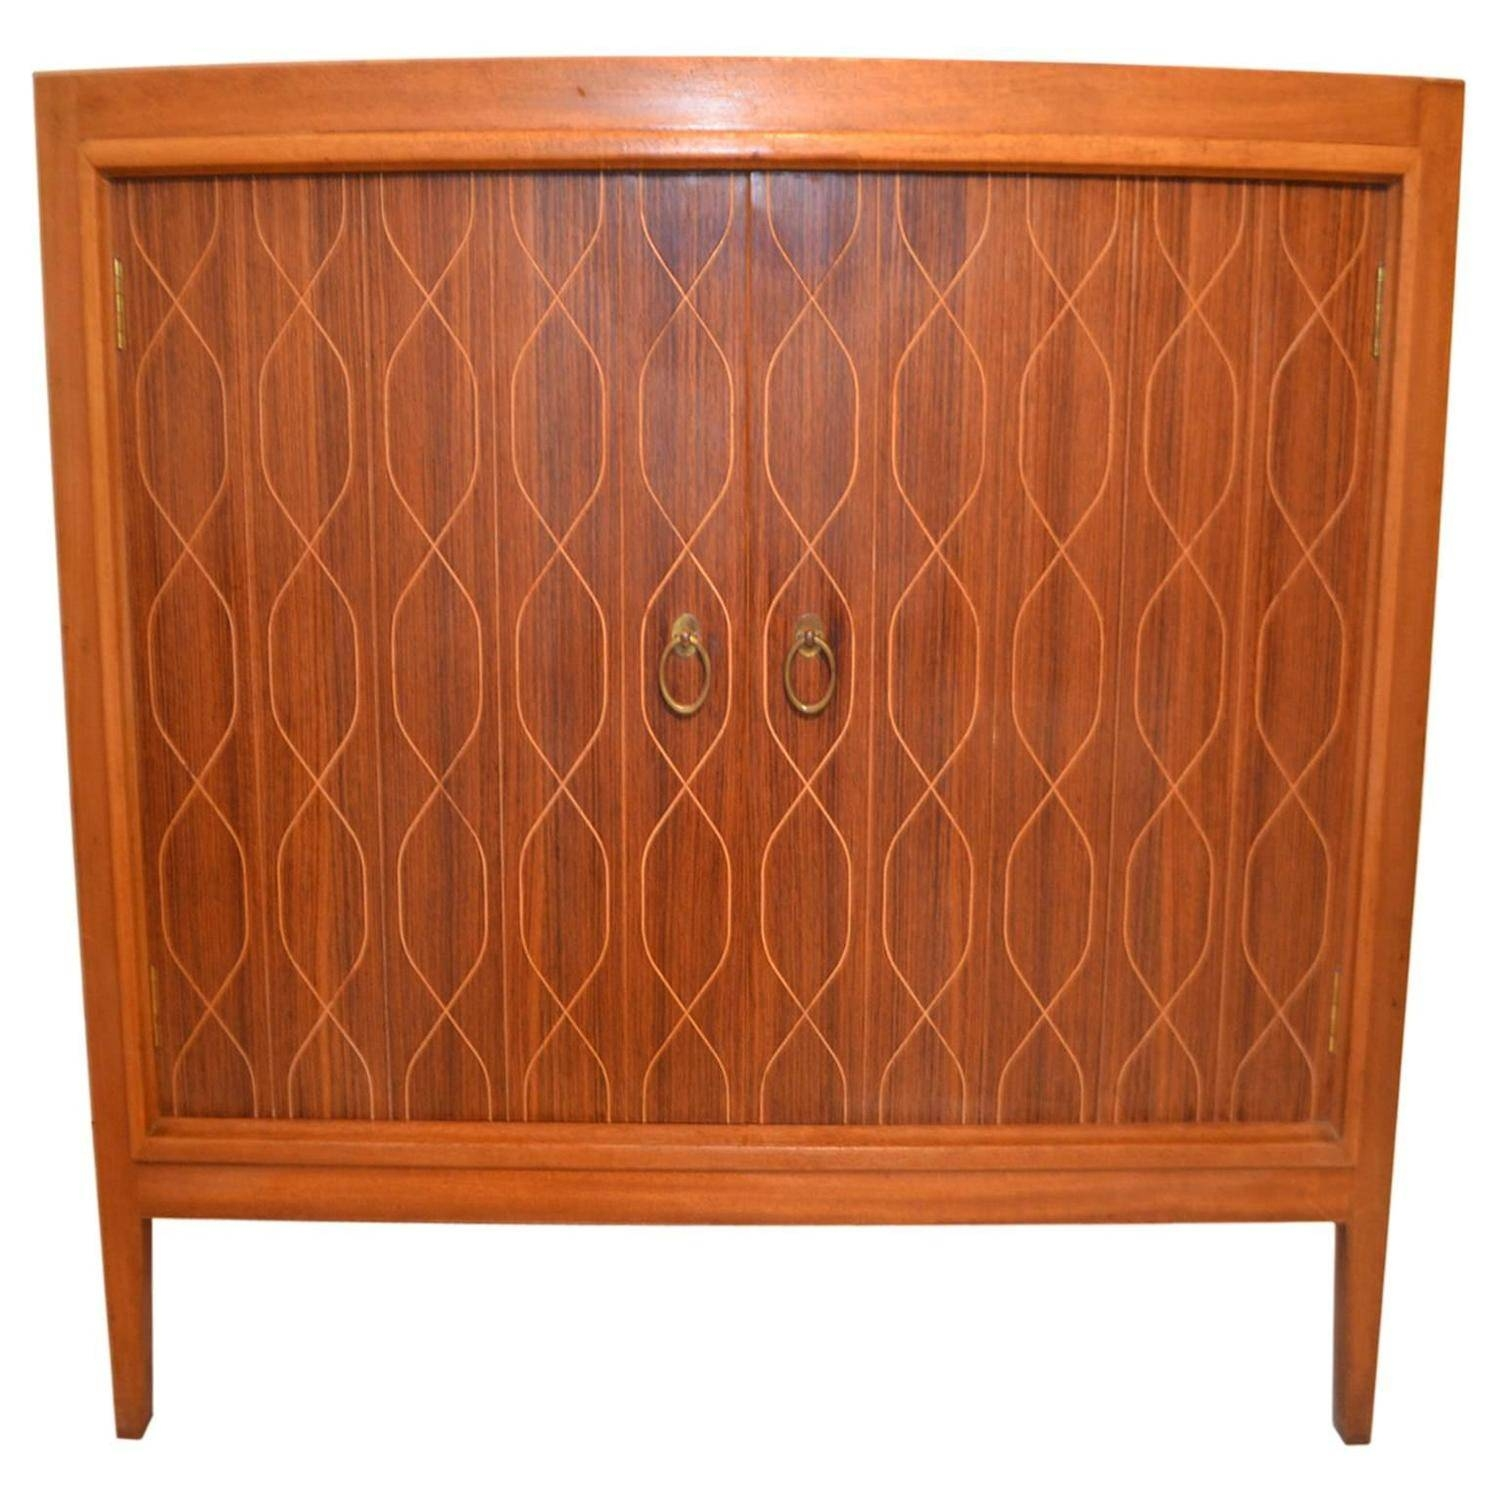 Inspiration about Rosewood And Mahogany Helix Sideboardbooth And Ledeboer For Pertaining To Most Popular Gordon Russell Helix Sideboards (#13 of 15)